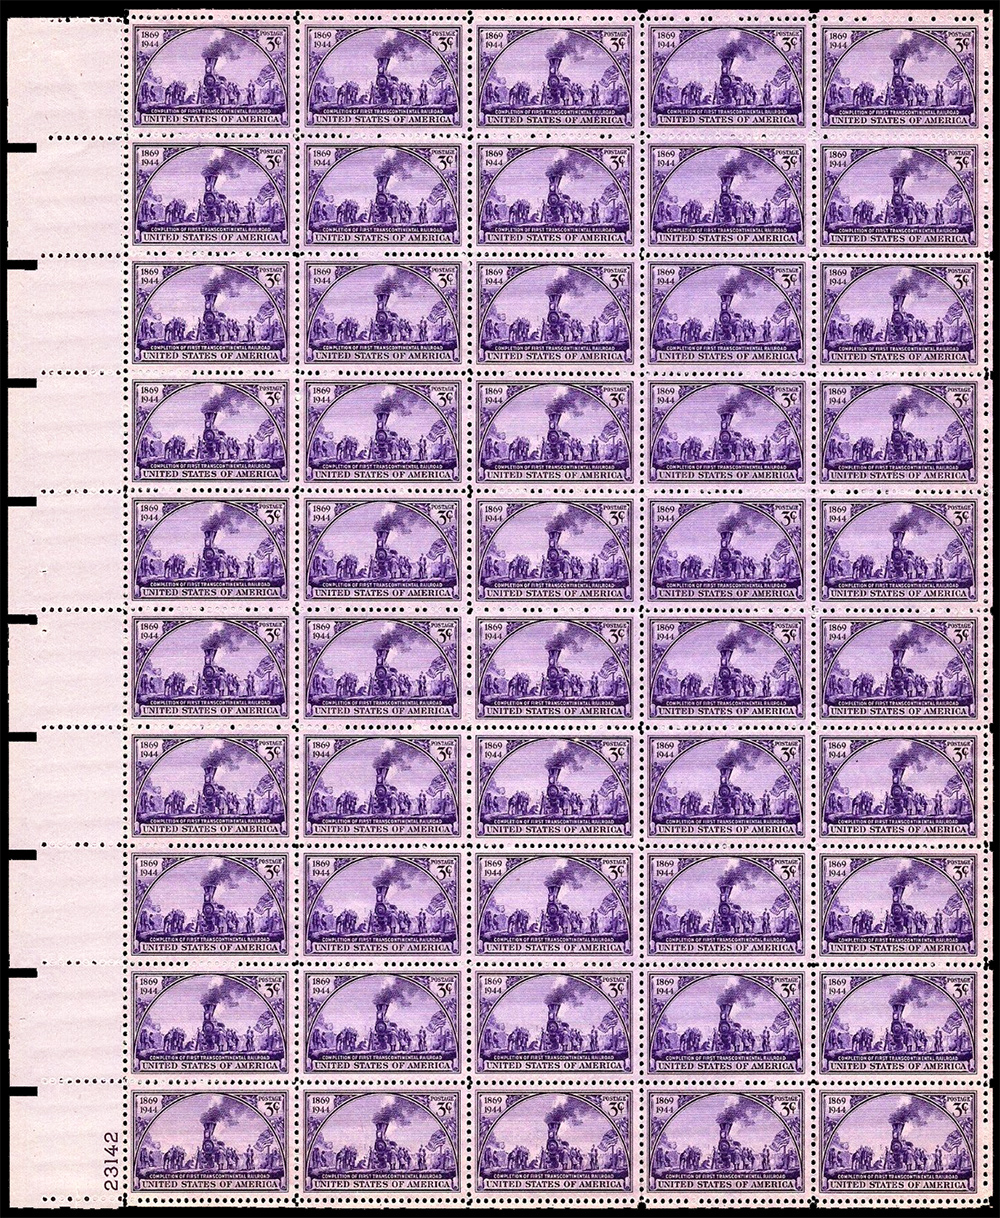 US stamp 922 sheet